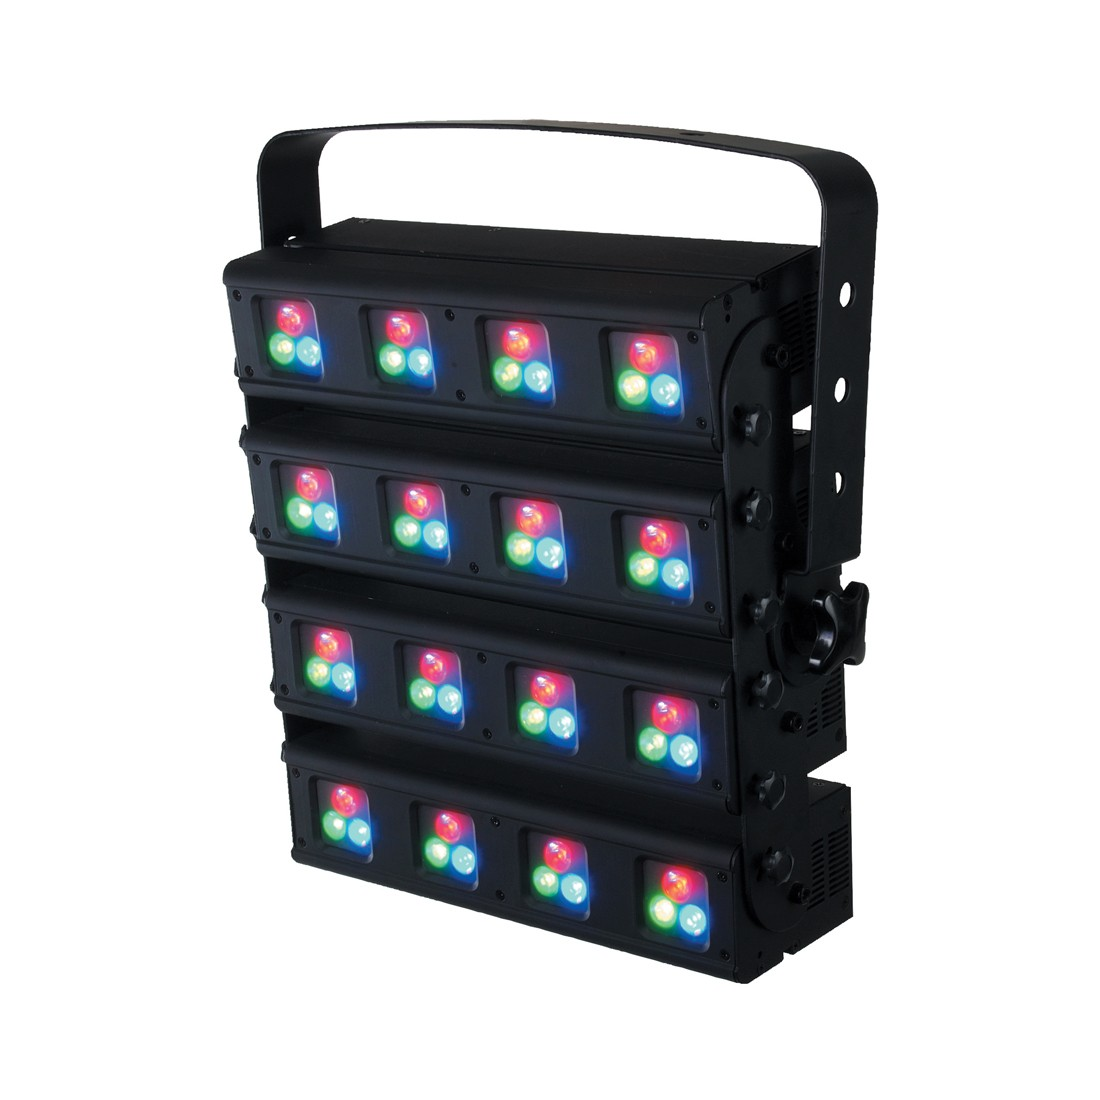 Elation DLED BKIT Blinder Kit Using 4 X Design LED Brick Fixture with Cables